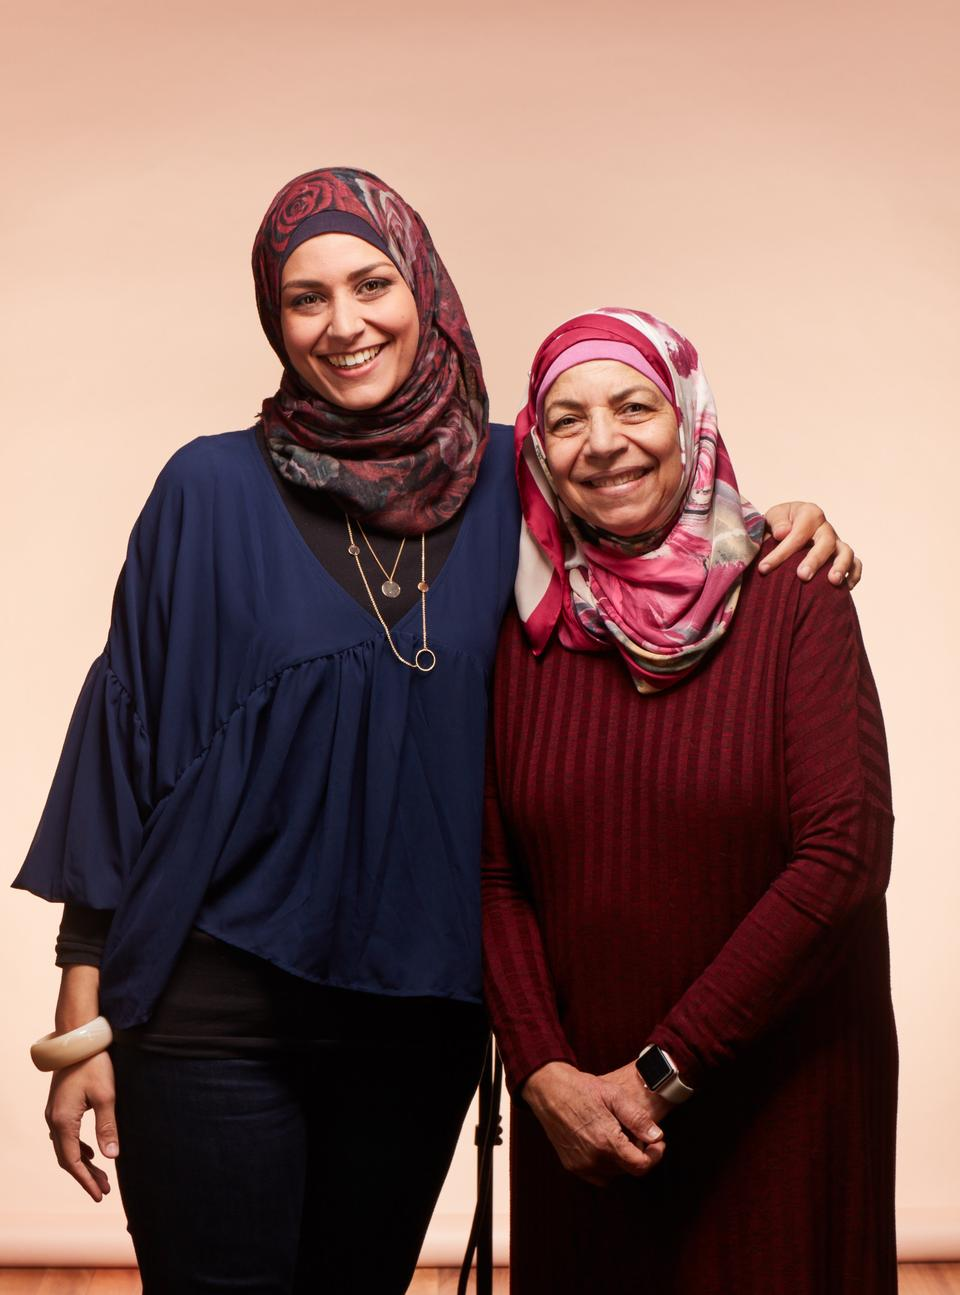 Galila Abdelsalam (R) founded and runs the Islamic Women's Association and Lamisse (L) is now recently divorced and trying to reconcile herself to her faith and identity.